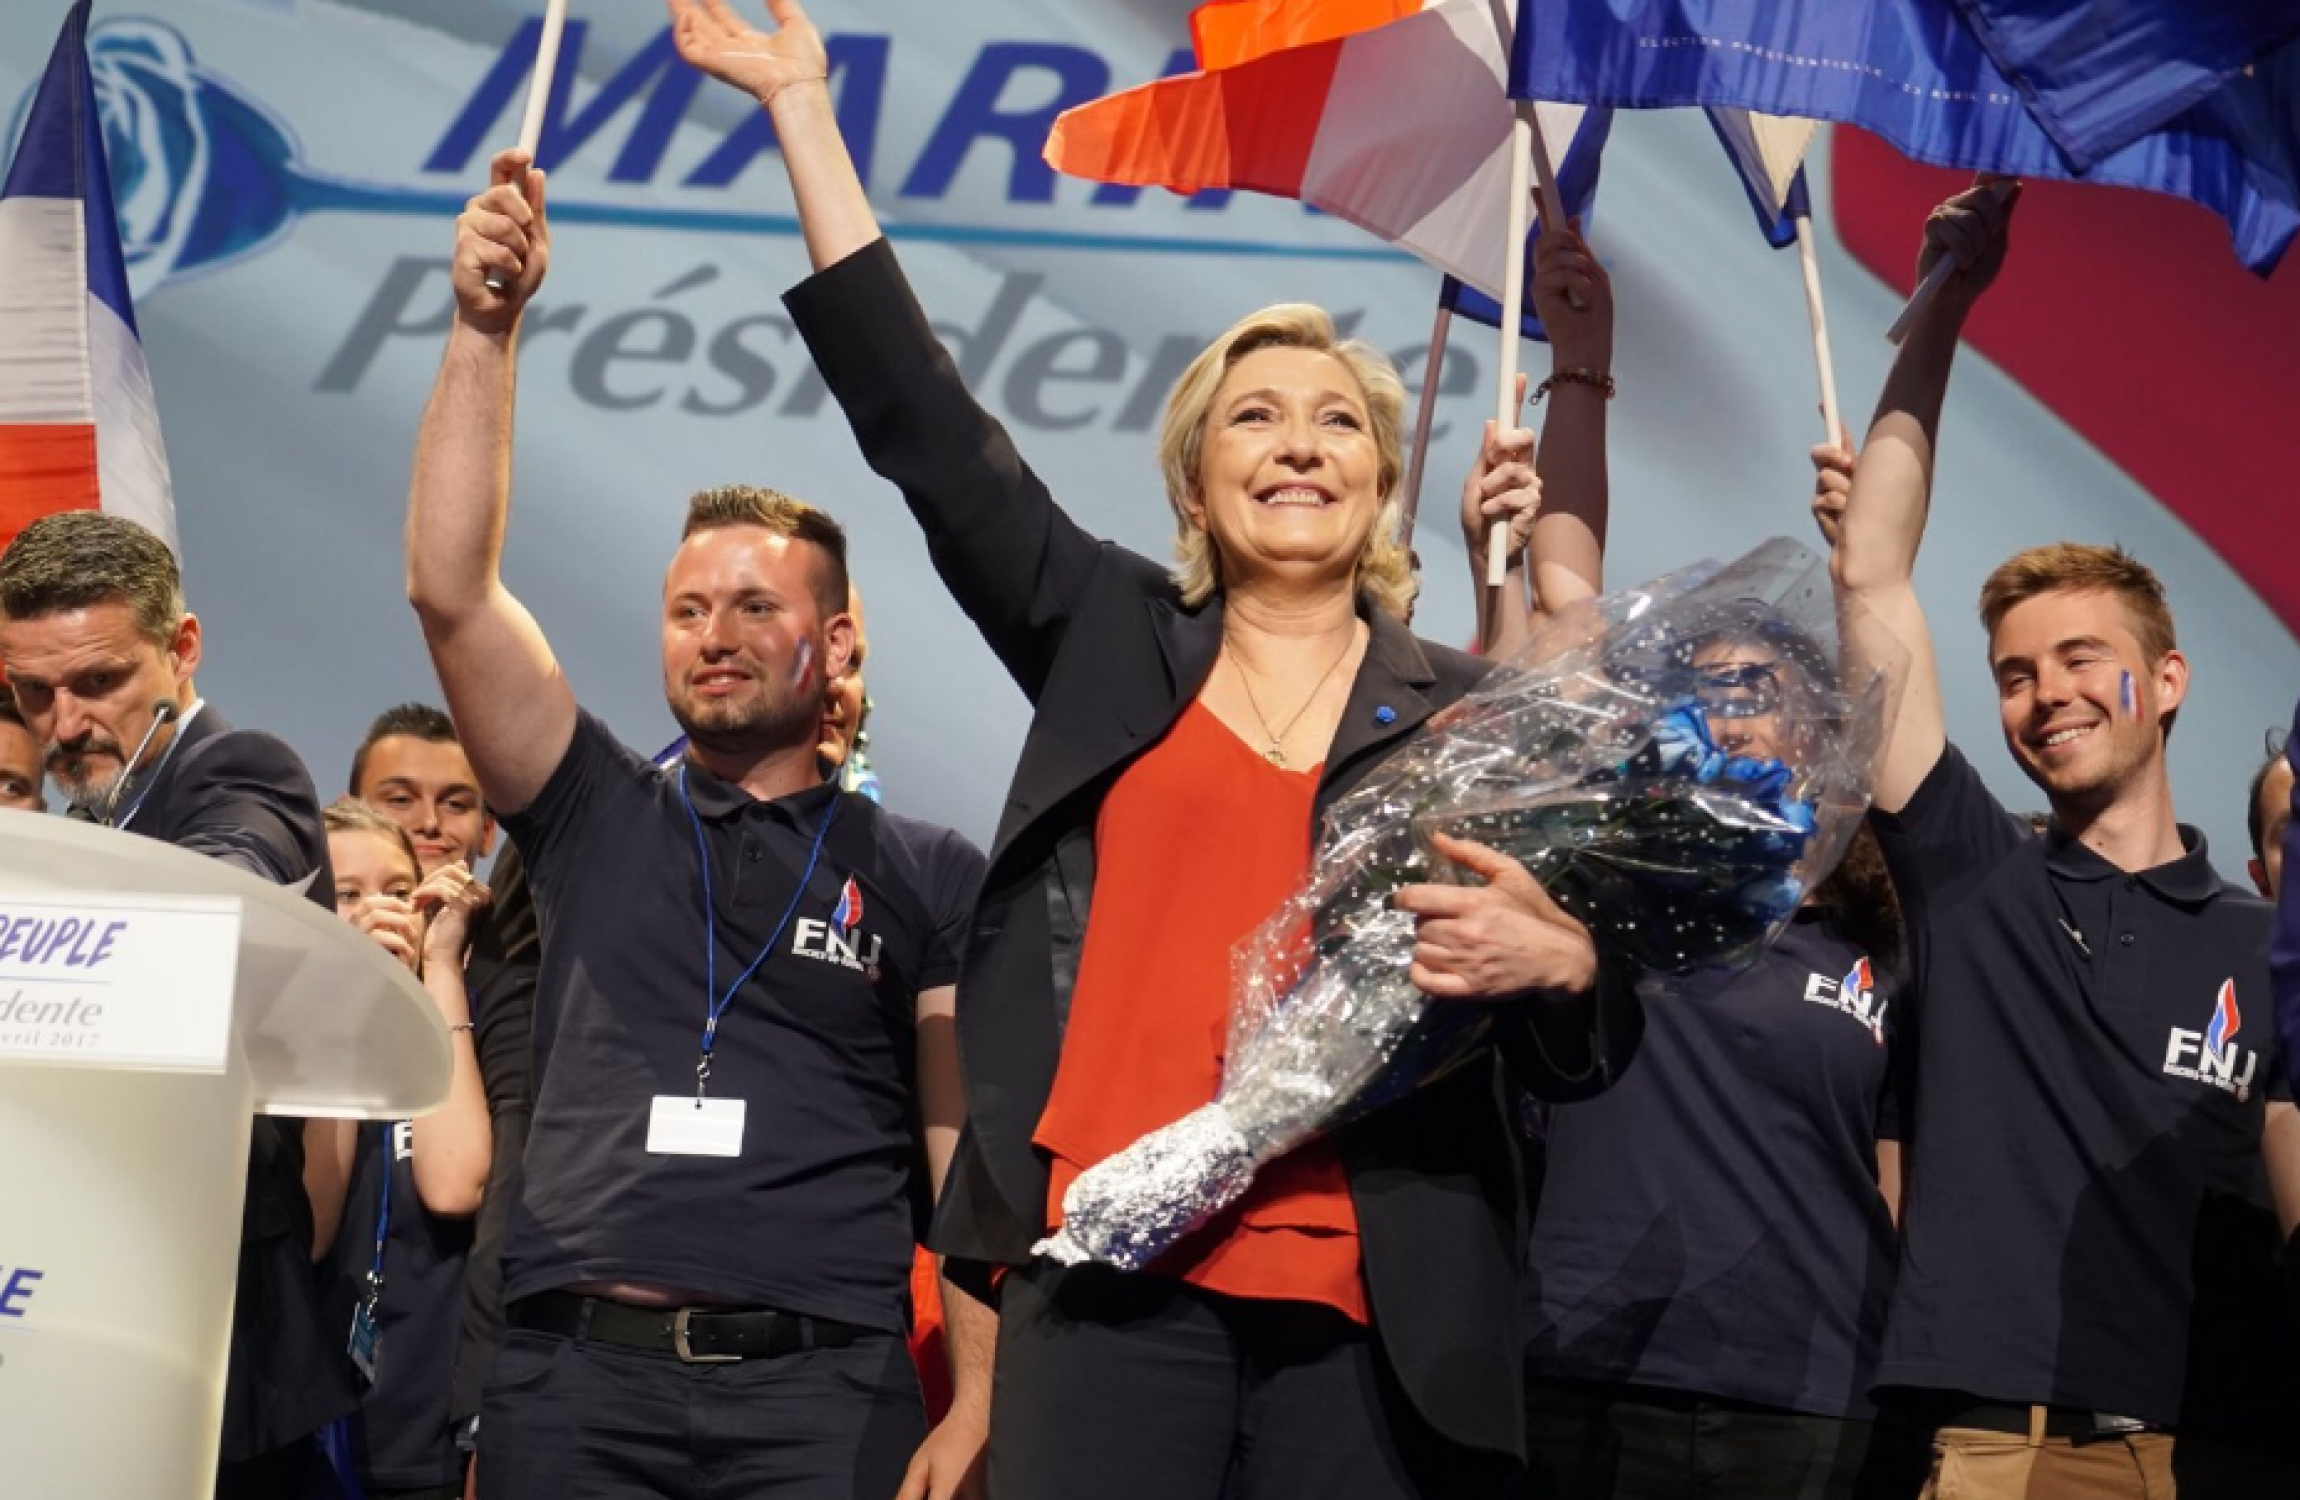 Le Pen slips behind Macron in French election race